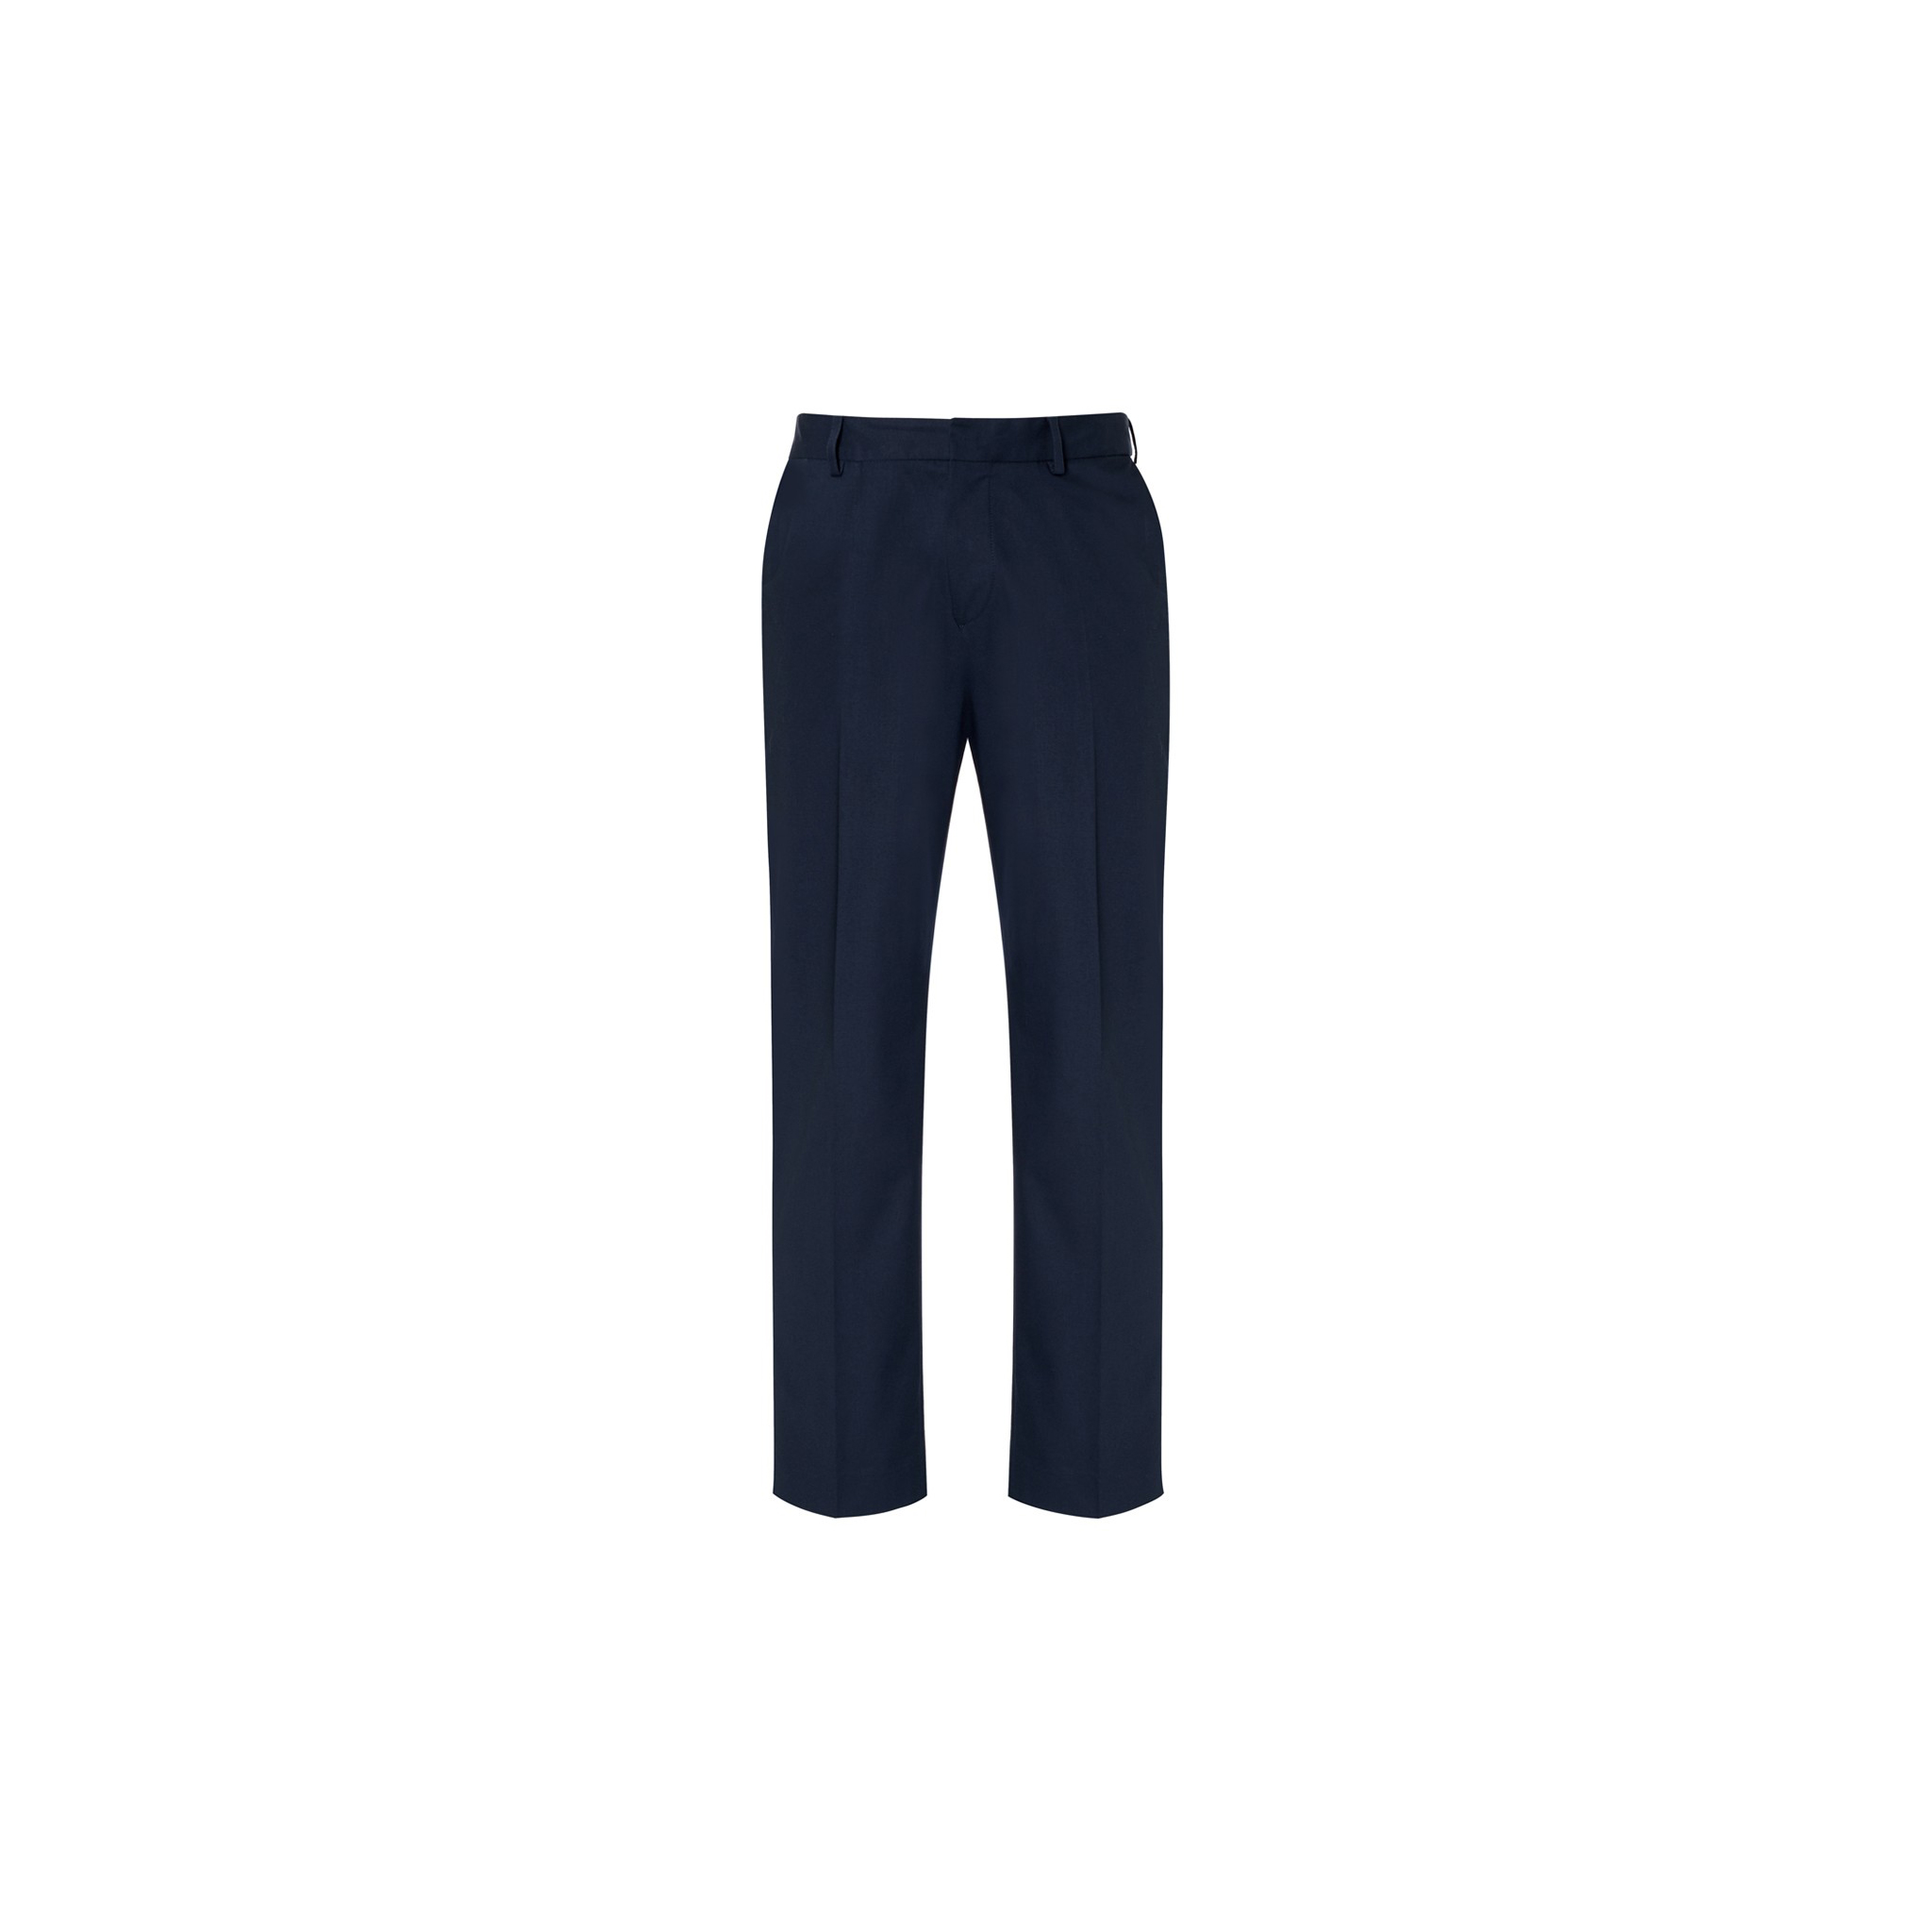 dark-navy-boys-suit-trousers_fr-270x355